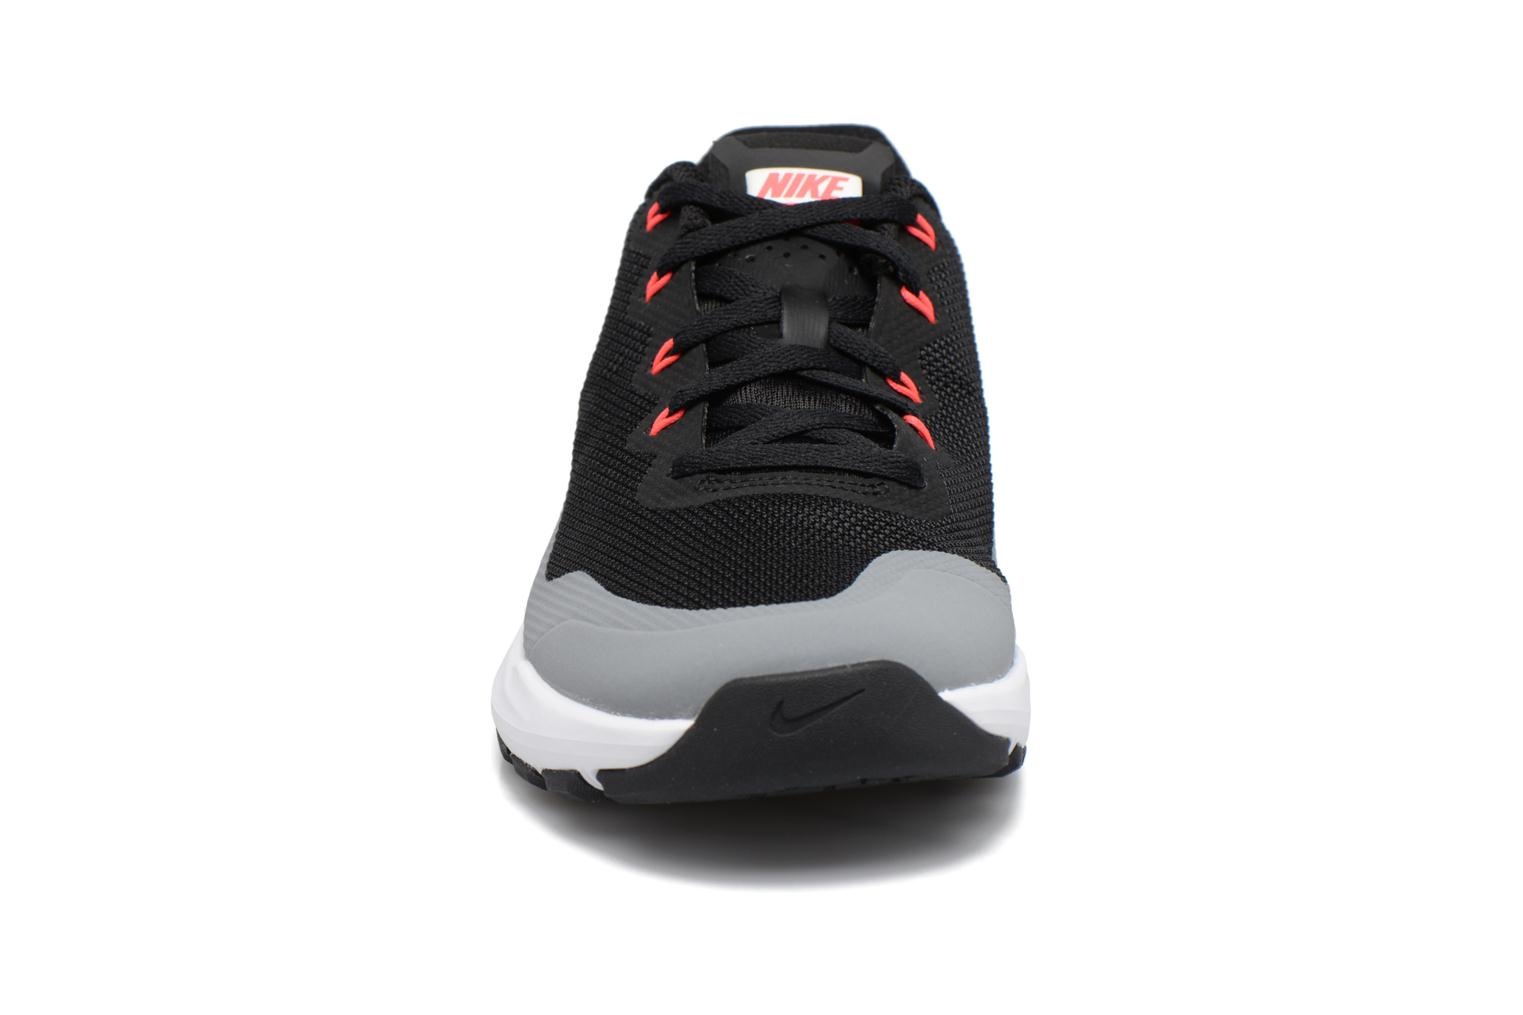 Wmns Nike Metcon Repper Dsx Black/Solar Red-Cool Grey-White